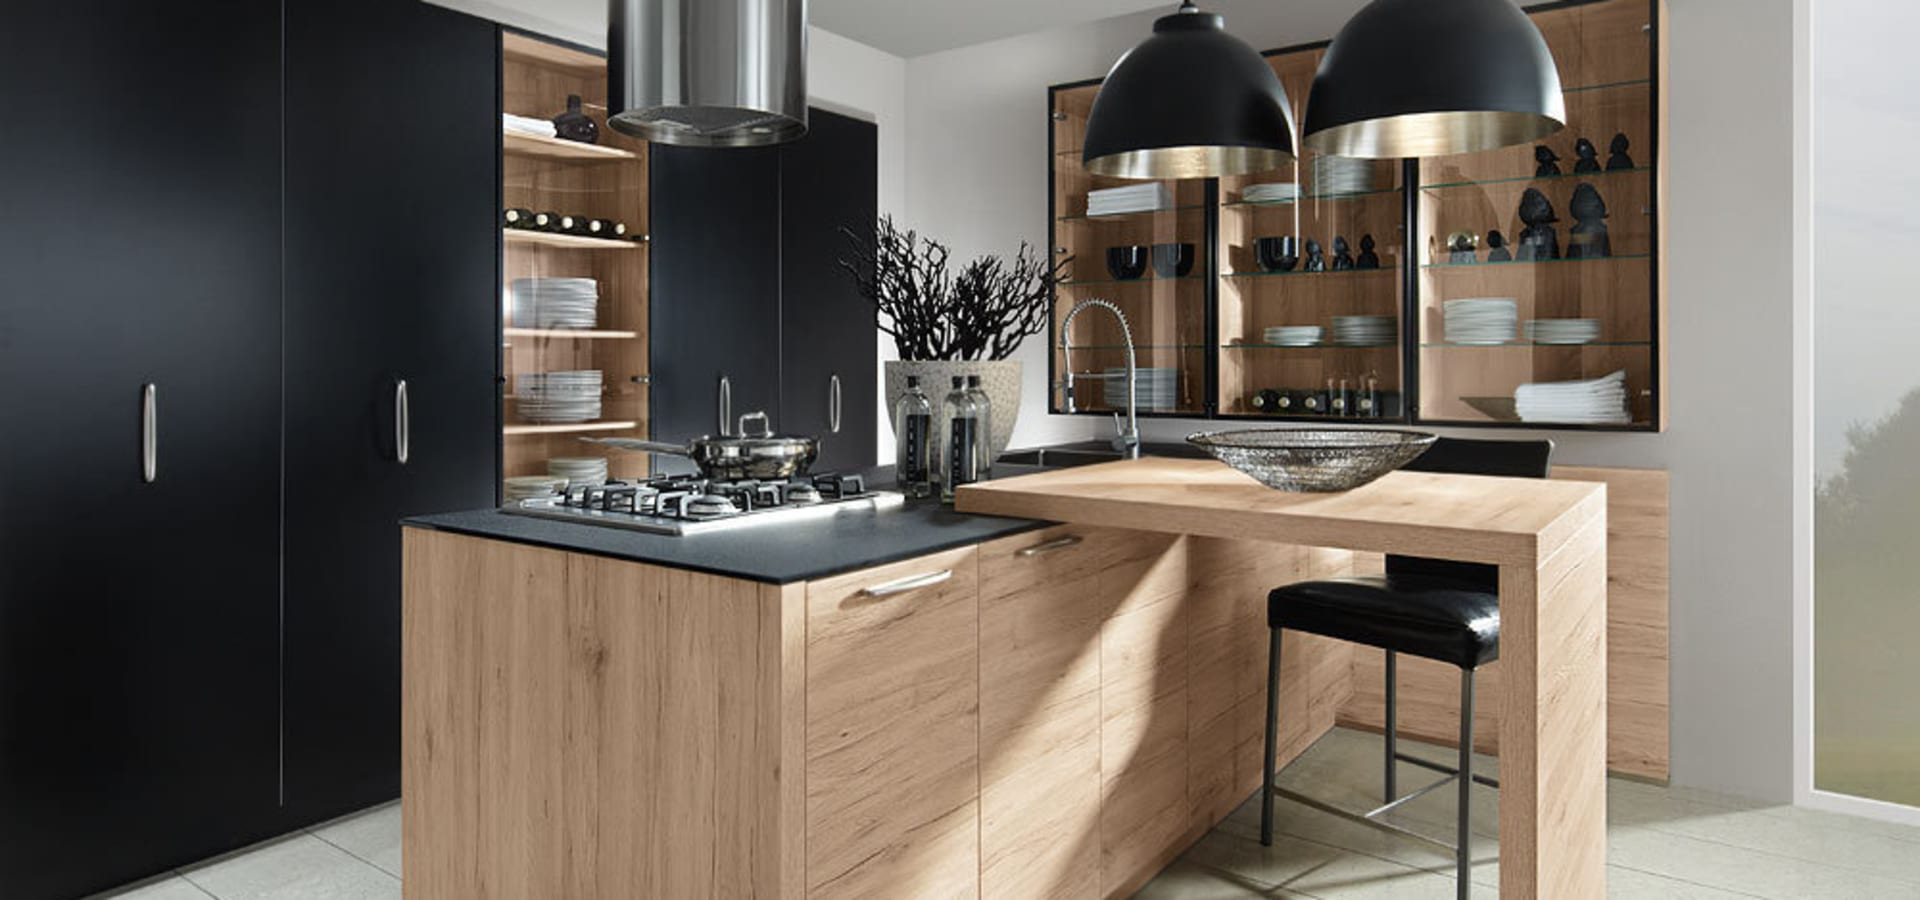 cuisine par schott cuisines homify. Black Bedroom Furniture Sets. Home Design Ideas